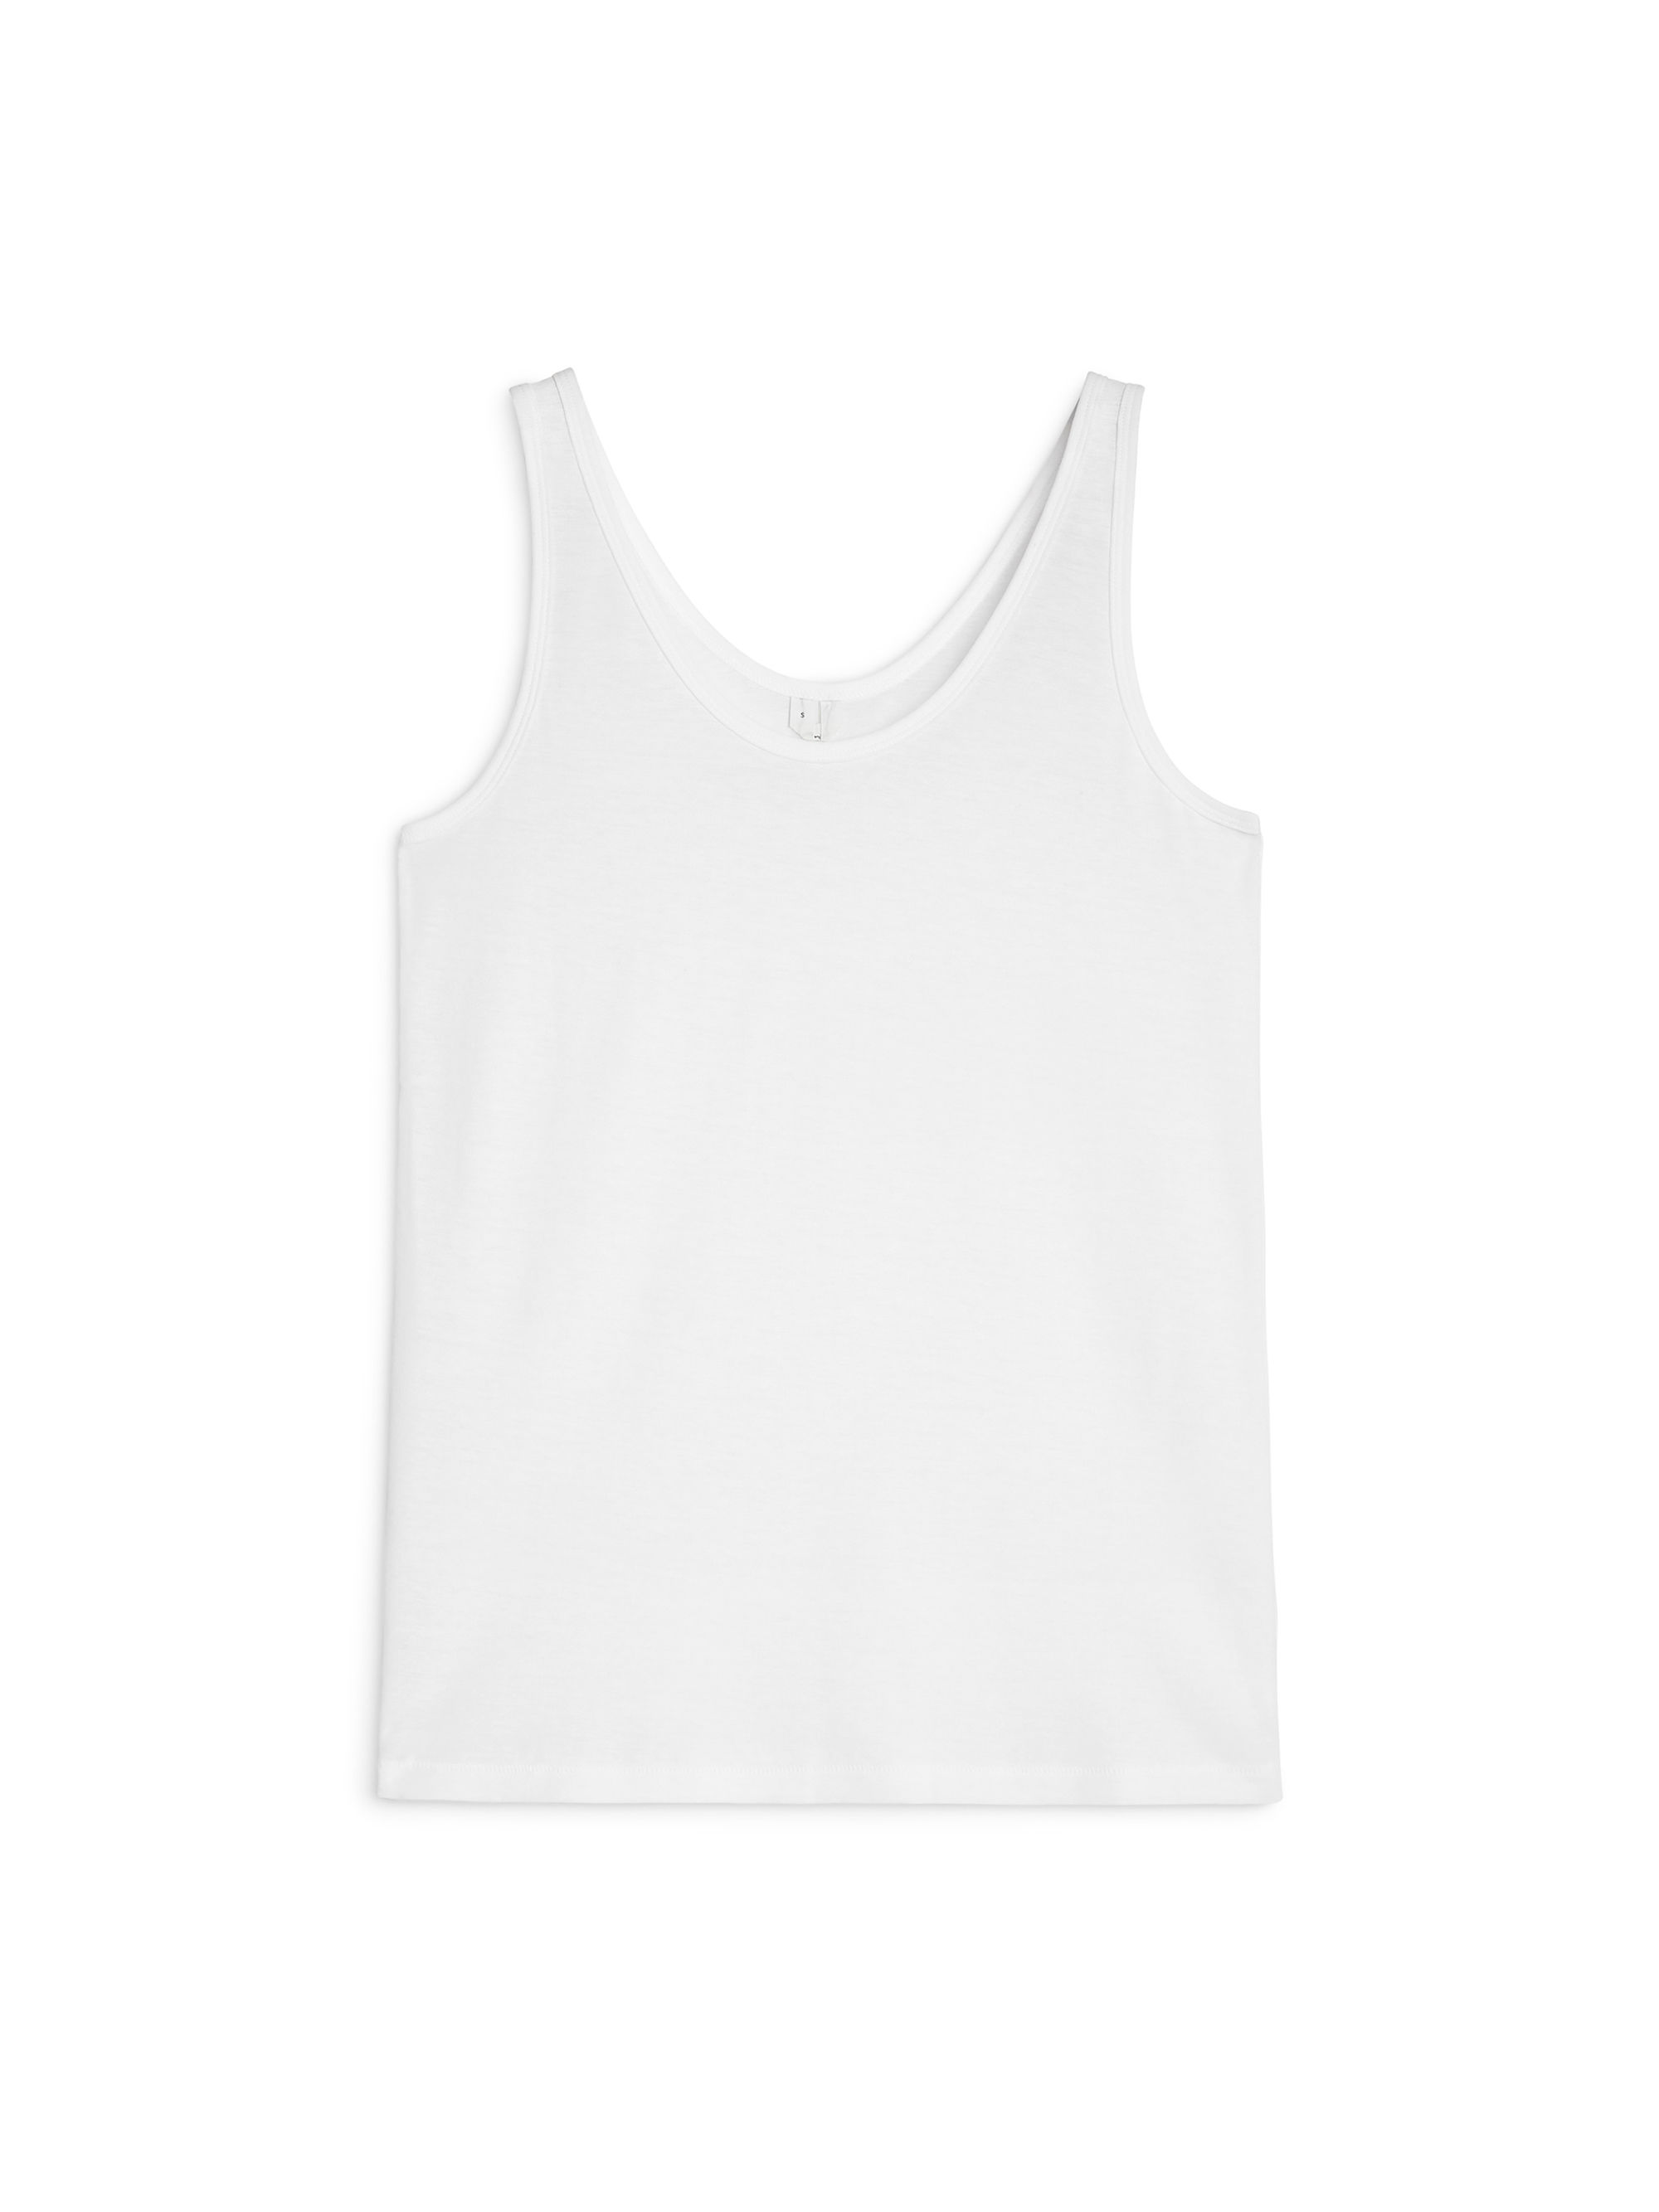 Fabric Swatch image of Arket pima cotton tank top in white